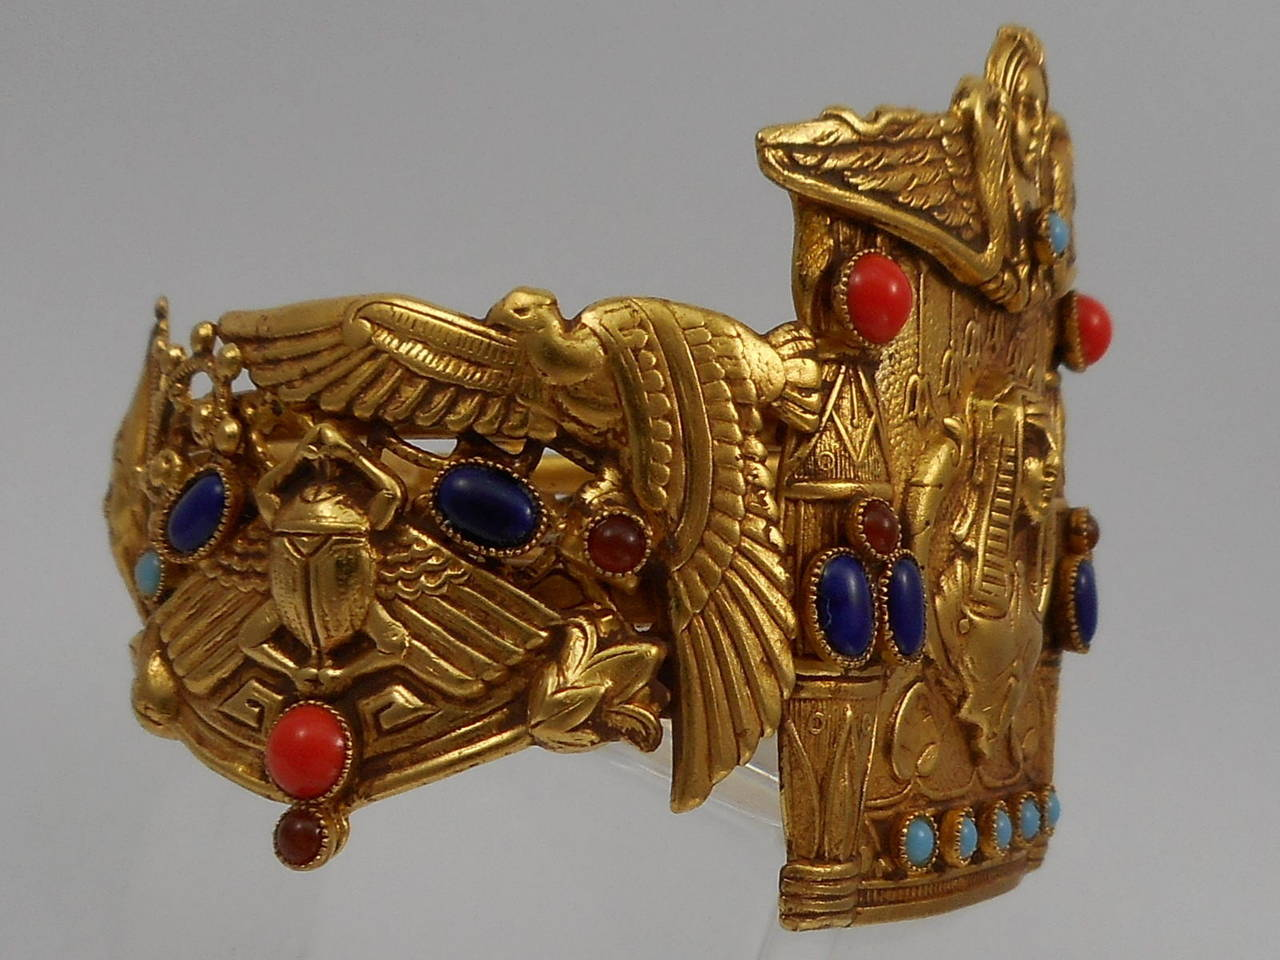 Contemporary Askew London Egyptian Revival Cleopatra And Falcon Cuff Bracelet